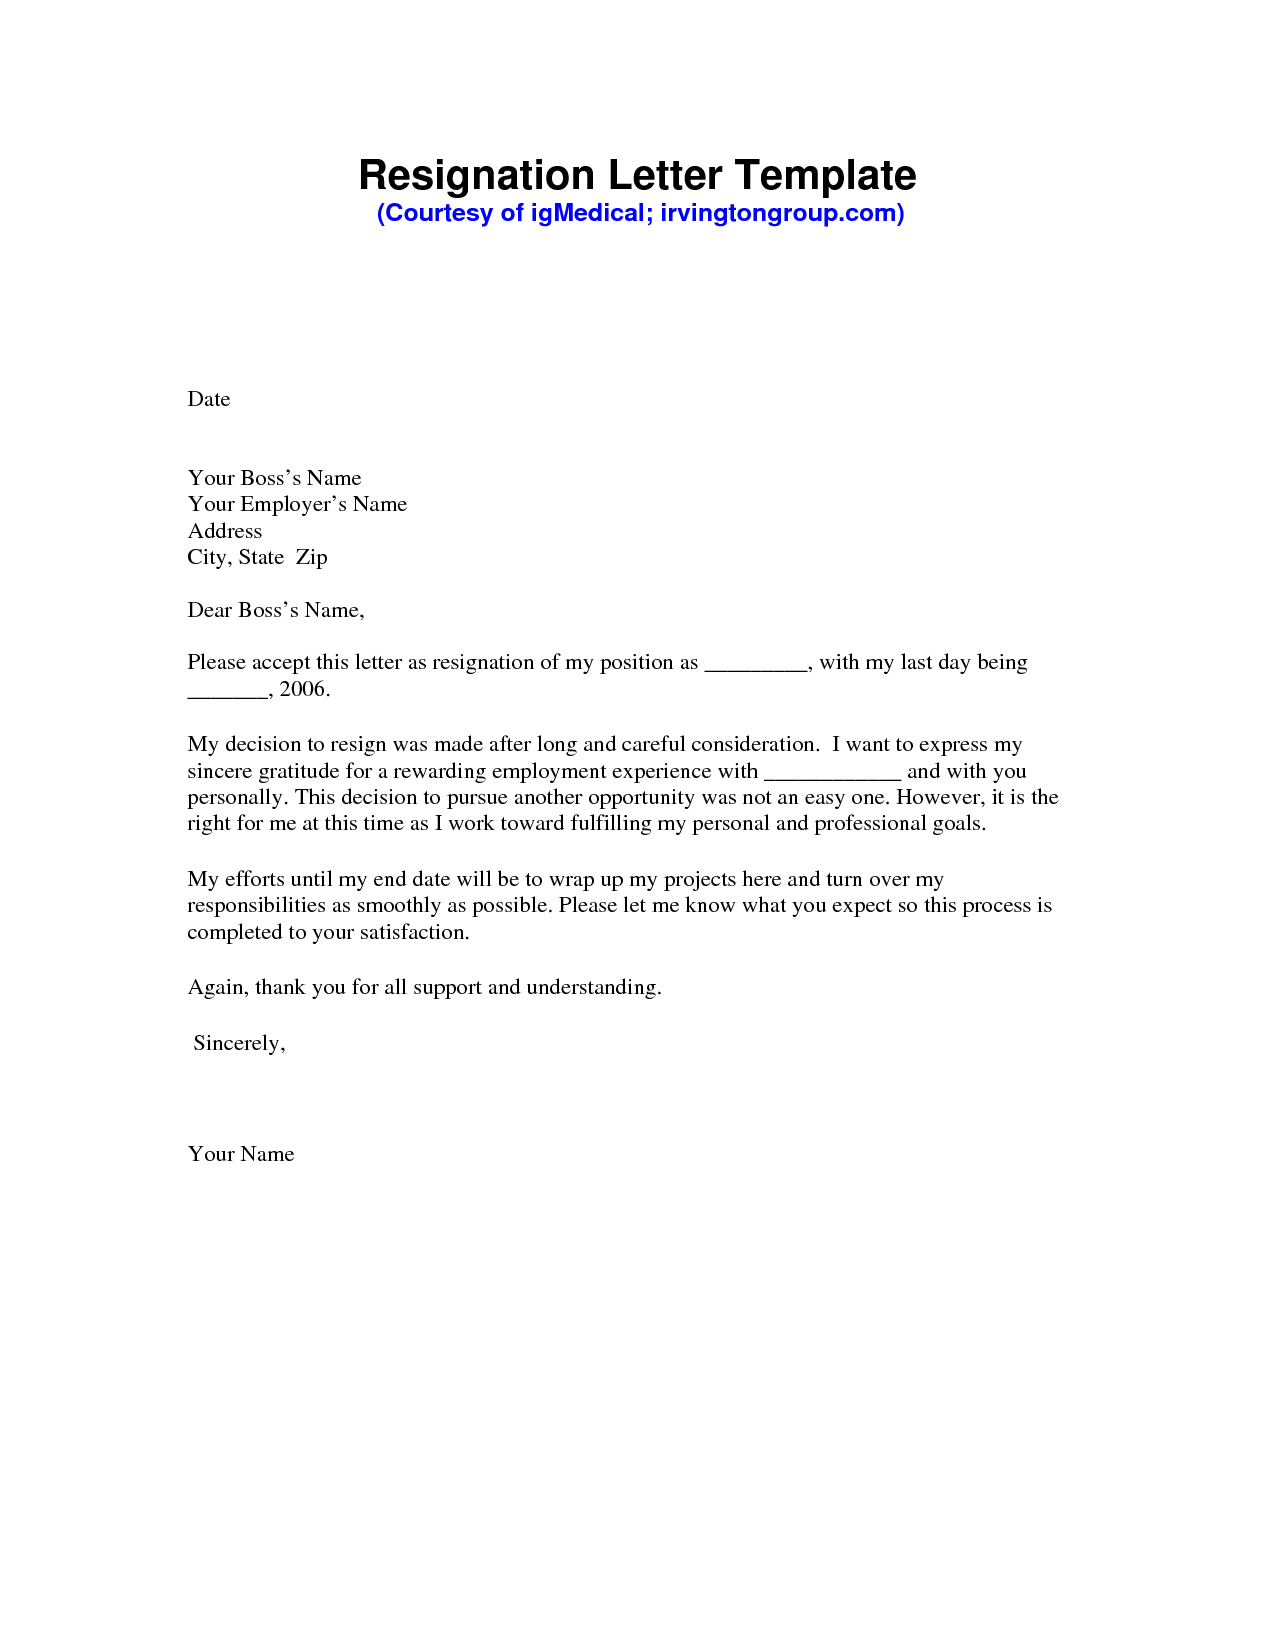 Resignation Letter Sample Pdf